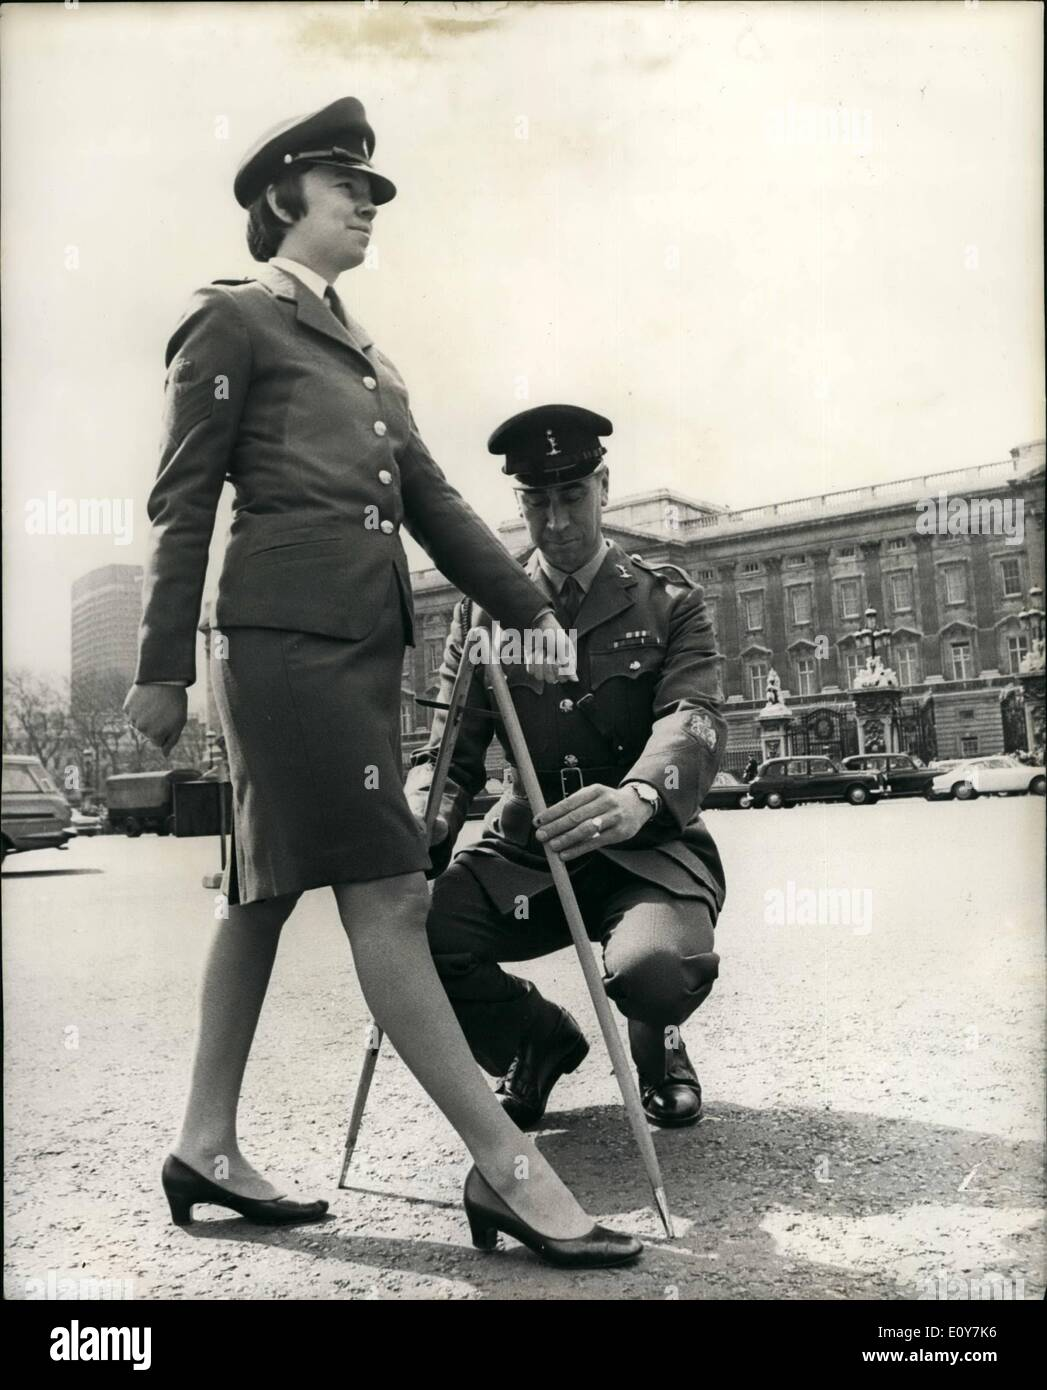 Apr. 04, 1969 - Pacing the Route; Pacing the route took place this morning of the first ever parade through London of the new ''territorials which will take place next Sunday (April 20). These pace makers who measured the route with pacing sticks formed up at the bottom of Constitution Hill. Opposite Buckingham Palace, from where 1,000 men and woman and 150 vehicles taking up the parade will start on April 20. They then paced the route in time honored manner. Past Buckingham Palace, into Bird cage walk as the guards at Parade - Stock Image